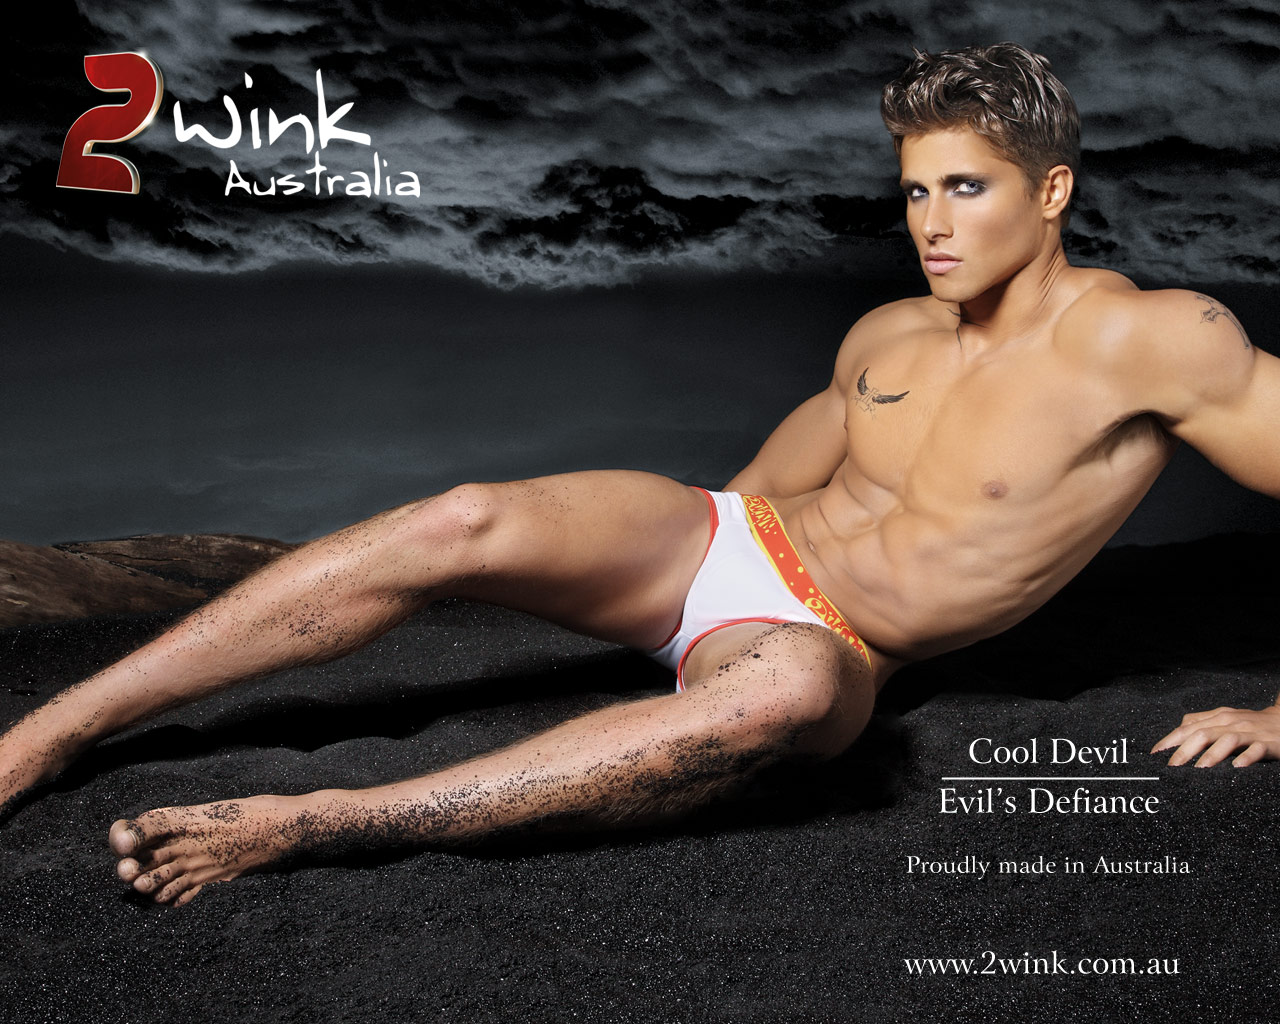 Underwear of the Week: 2wink Cool Devil and Hot Angel